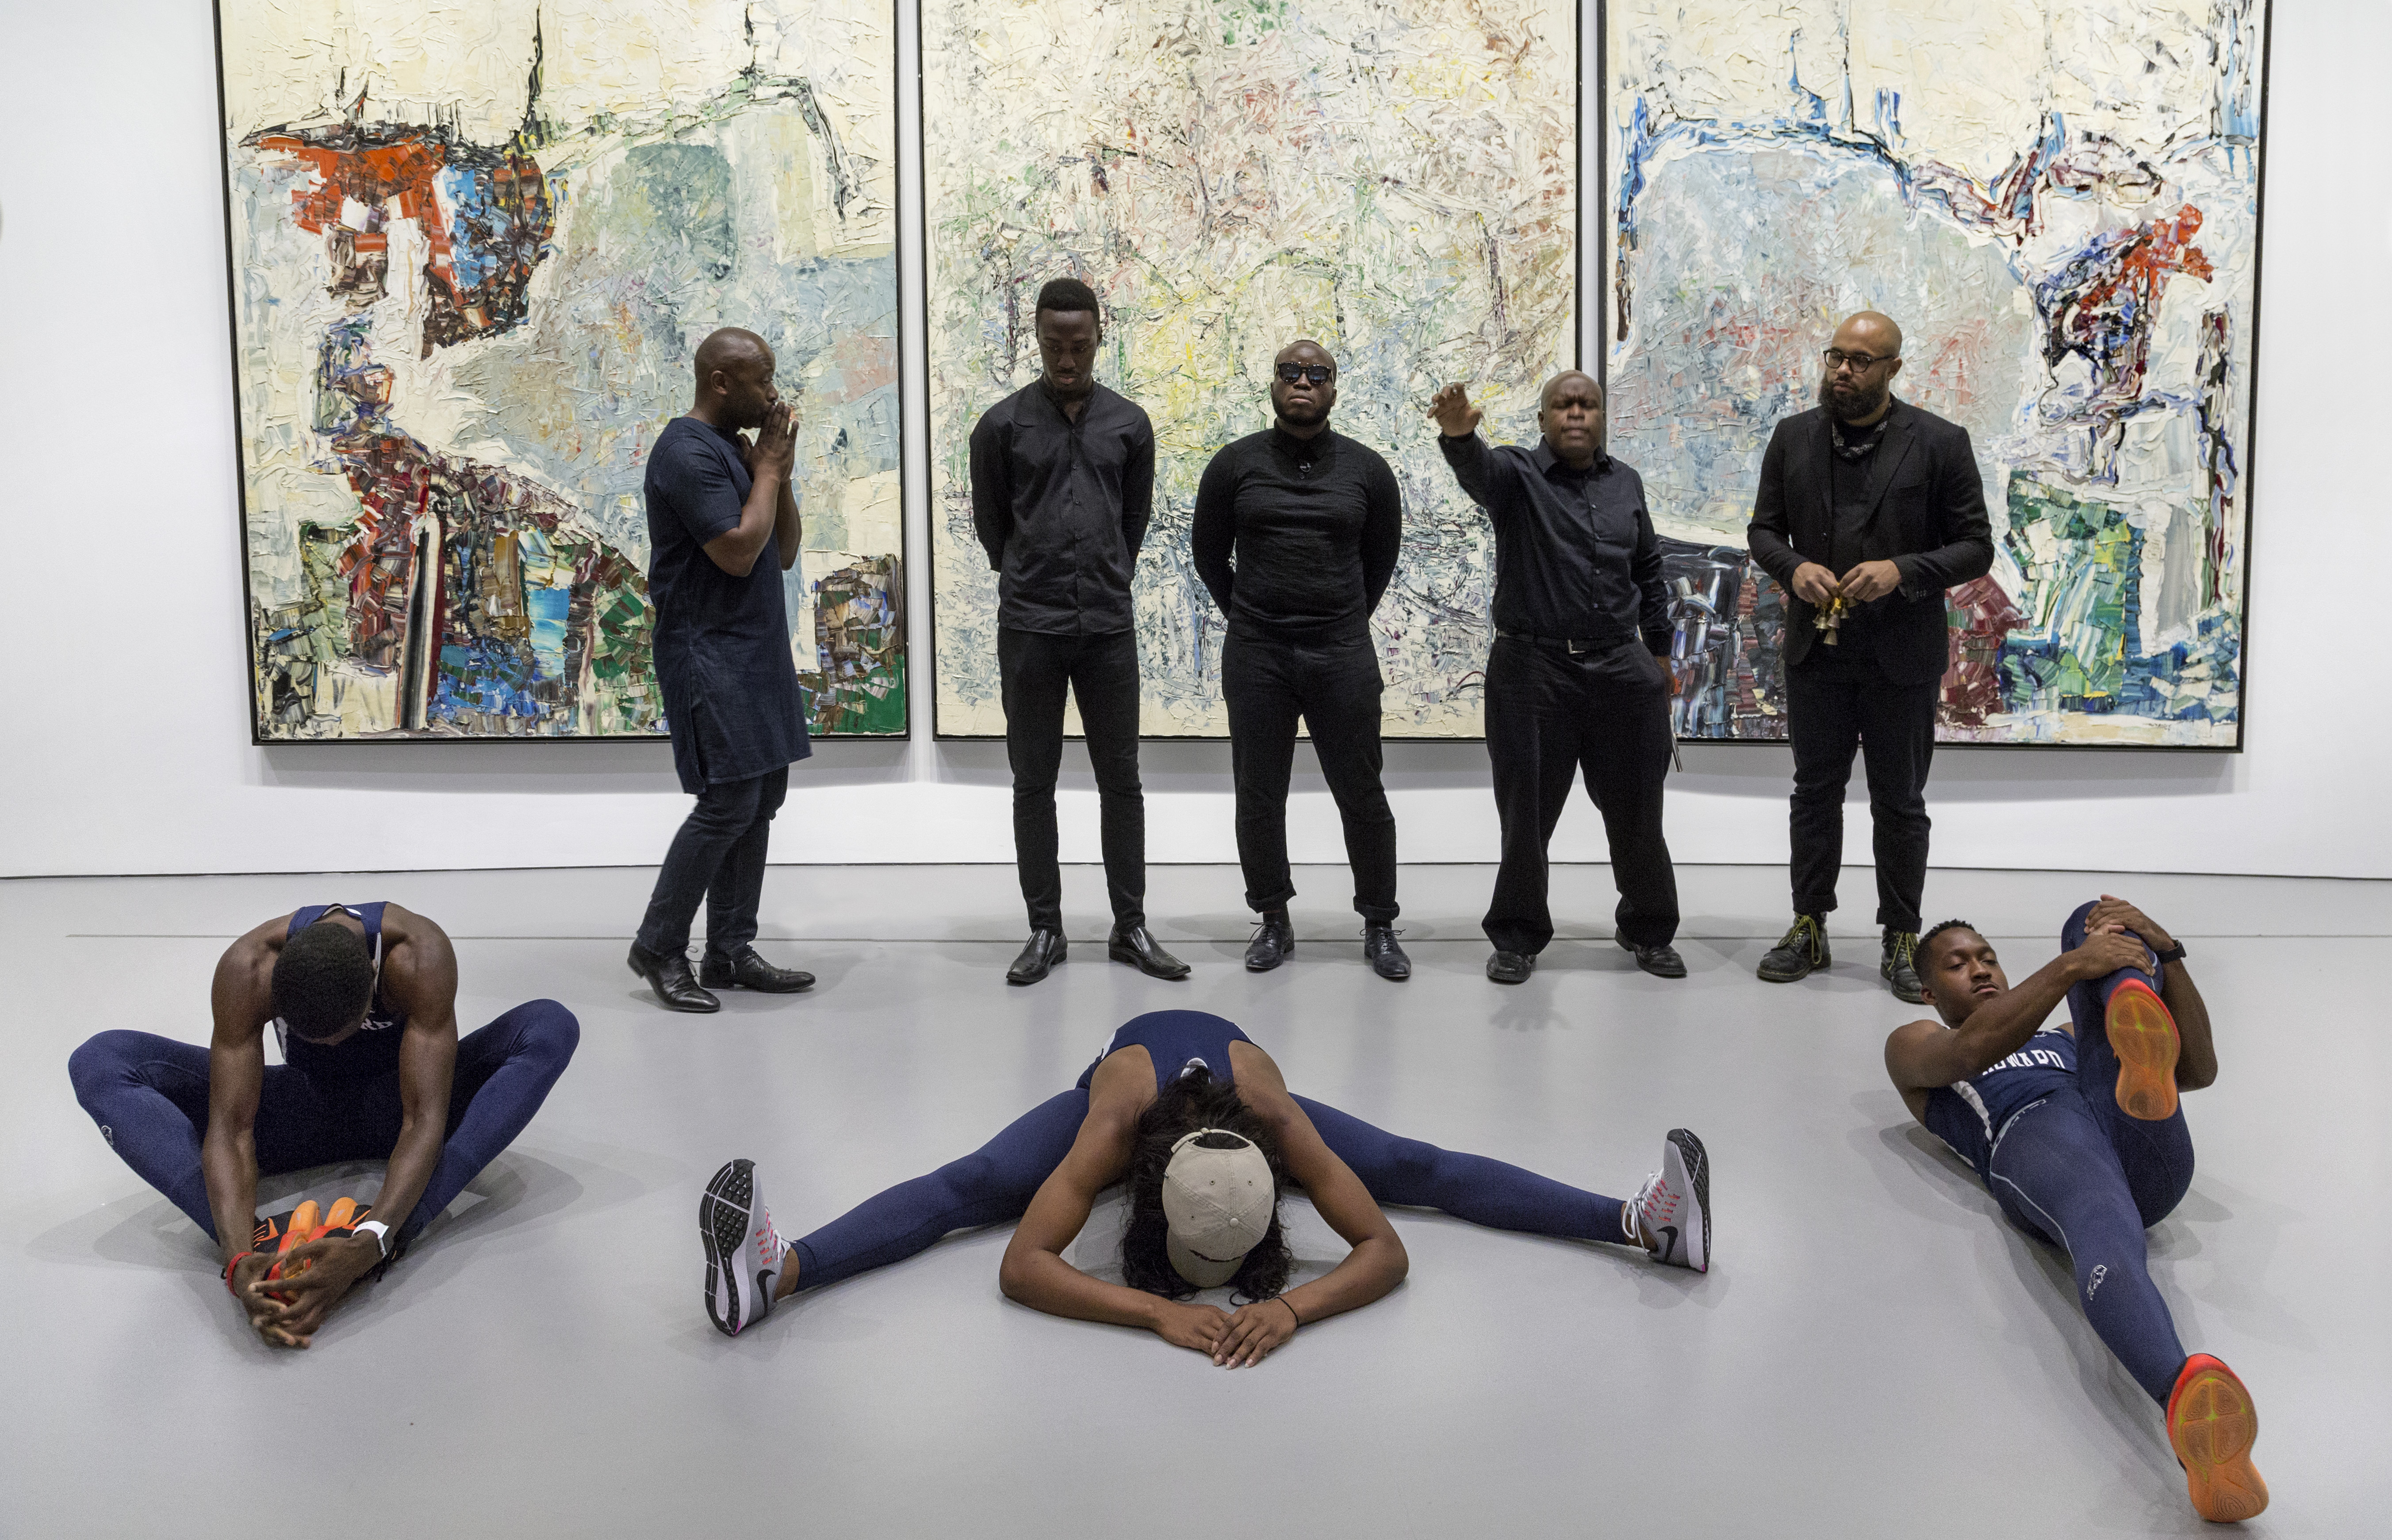 Theaster Gates, Processions: The Runners at the Hirshhorn Museum and Sculpture Garden, 2016. Photo: Cathy Carver